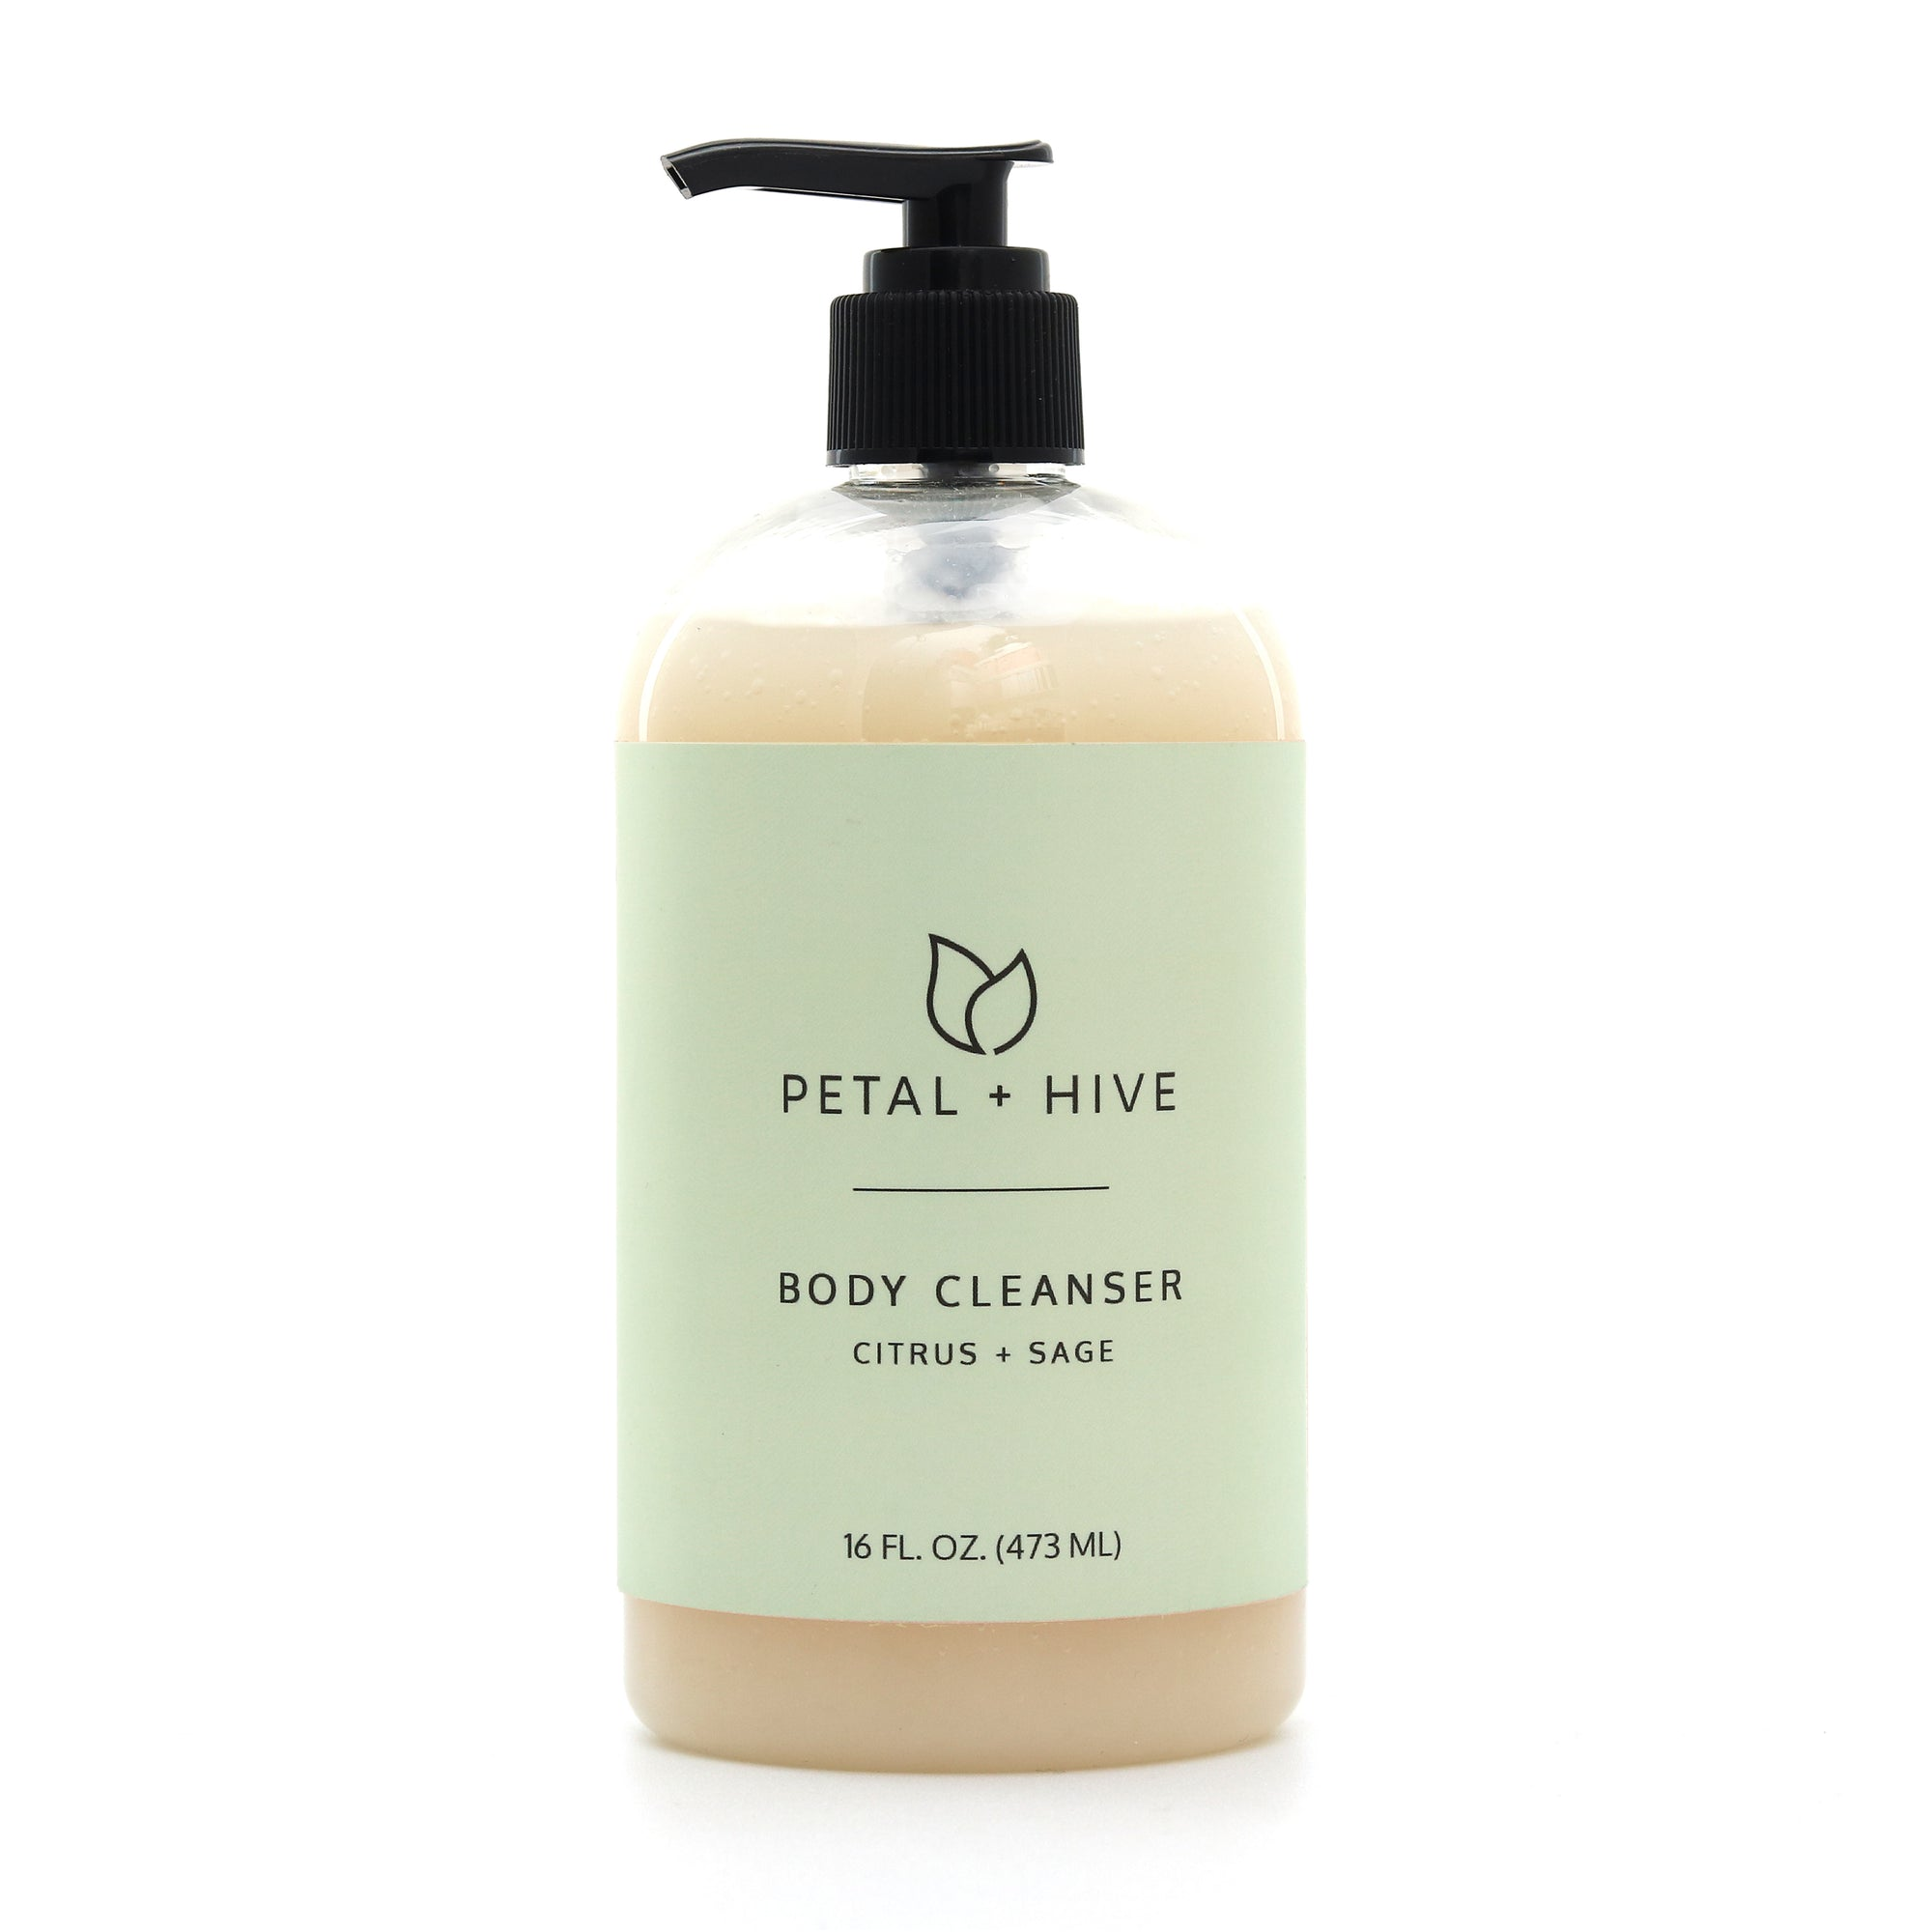 Citrus + Sage Body Cleanser